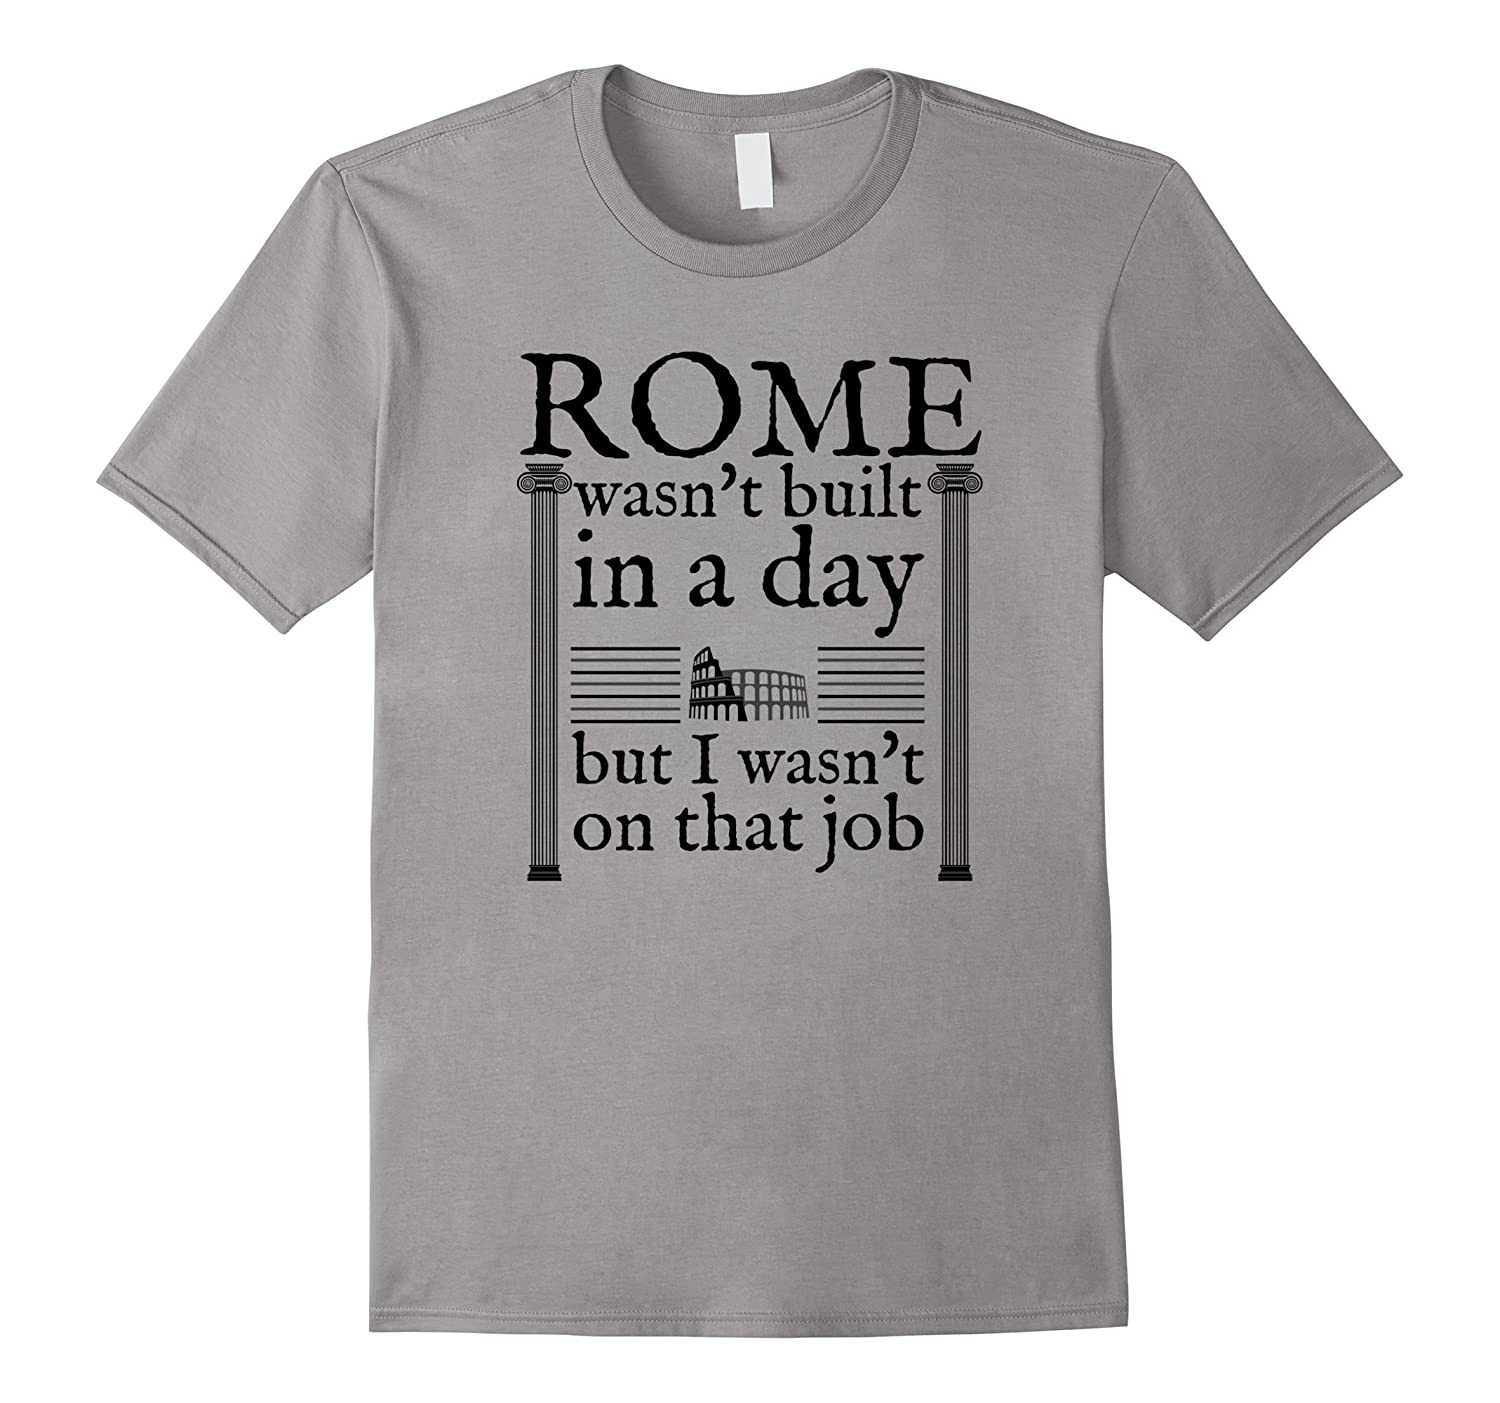 Rome wasnt built in a day but I wasnt on that job Funny-TJ